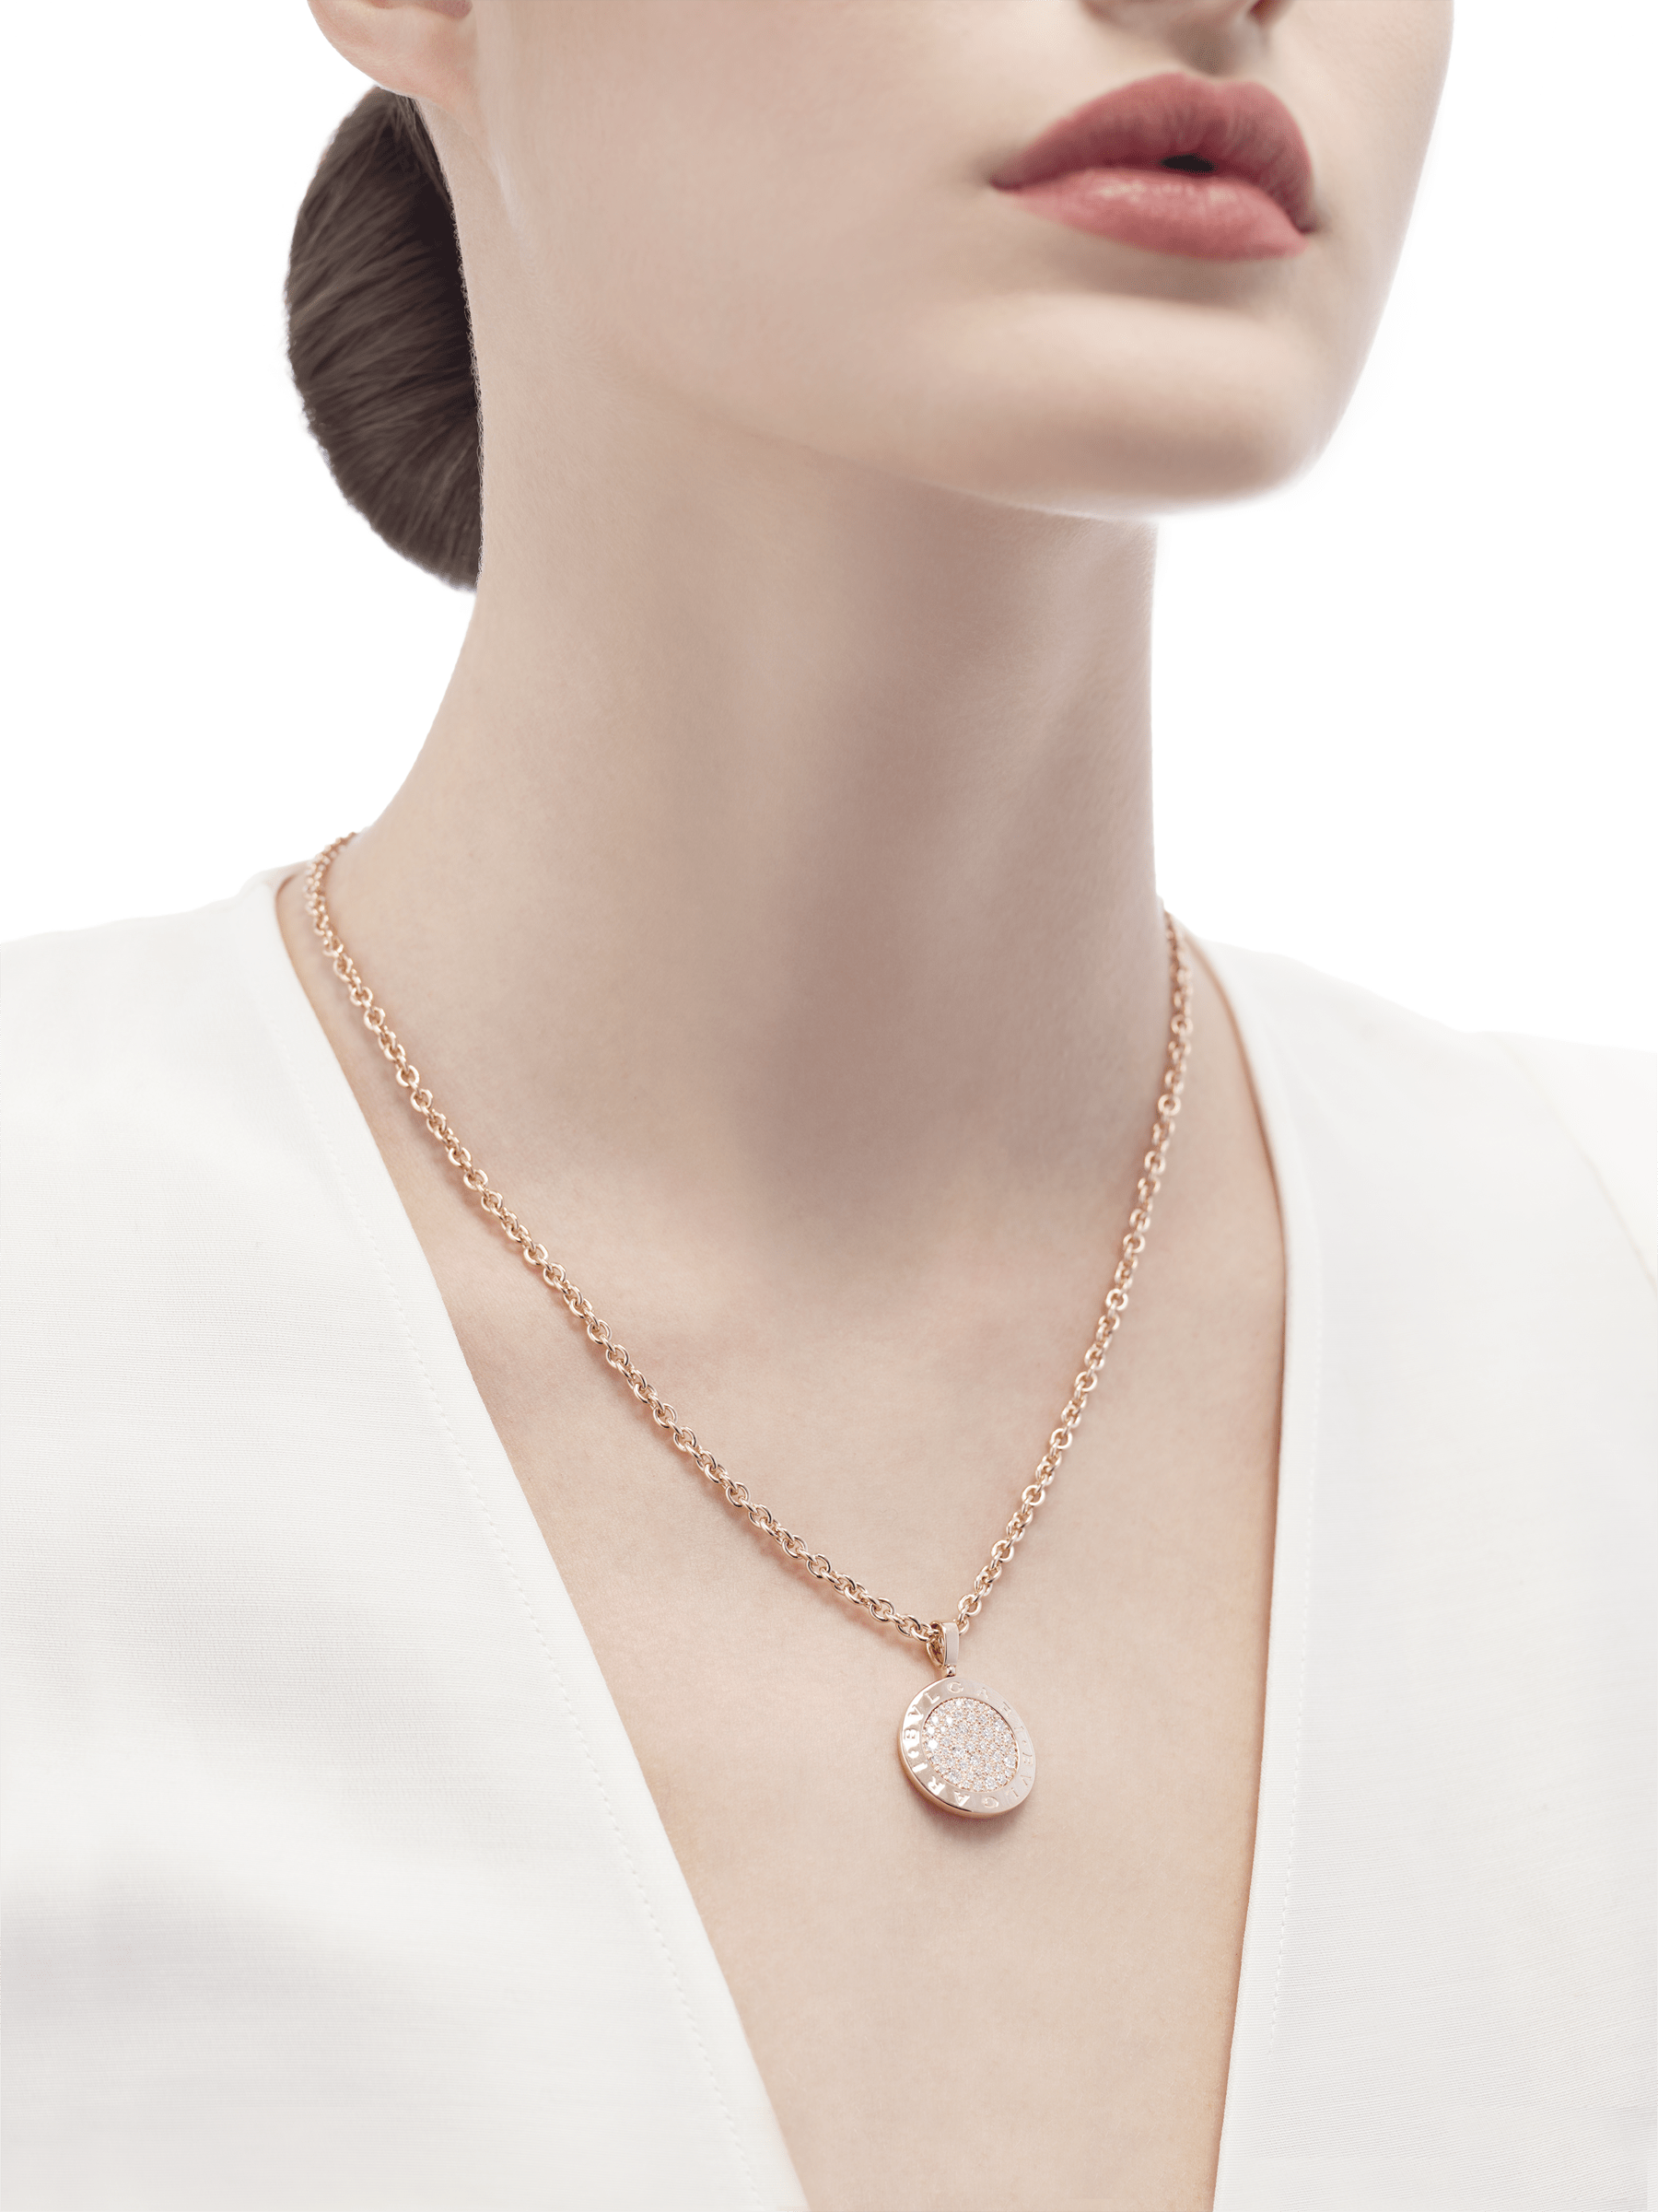 BVLGARI BVLGARI necklace with 18 kt rose gold chain and 18 kt rose gold pendant set with pavé diamonds 345277 image 4